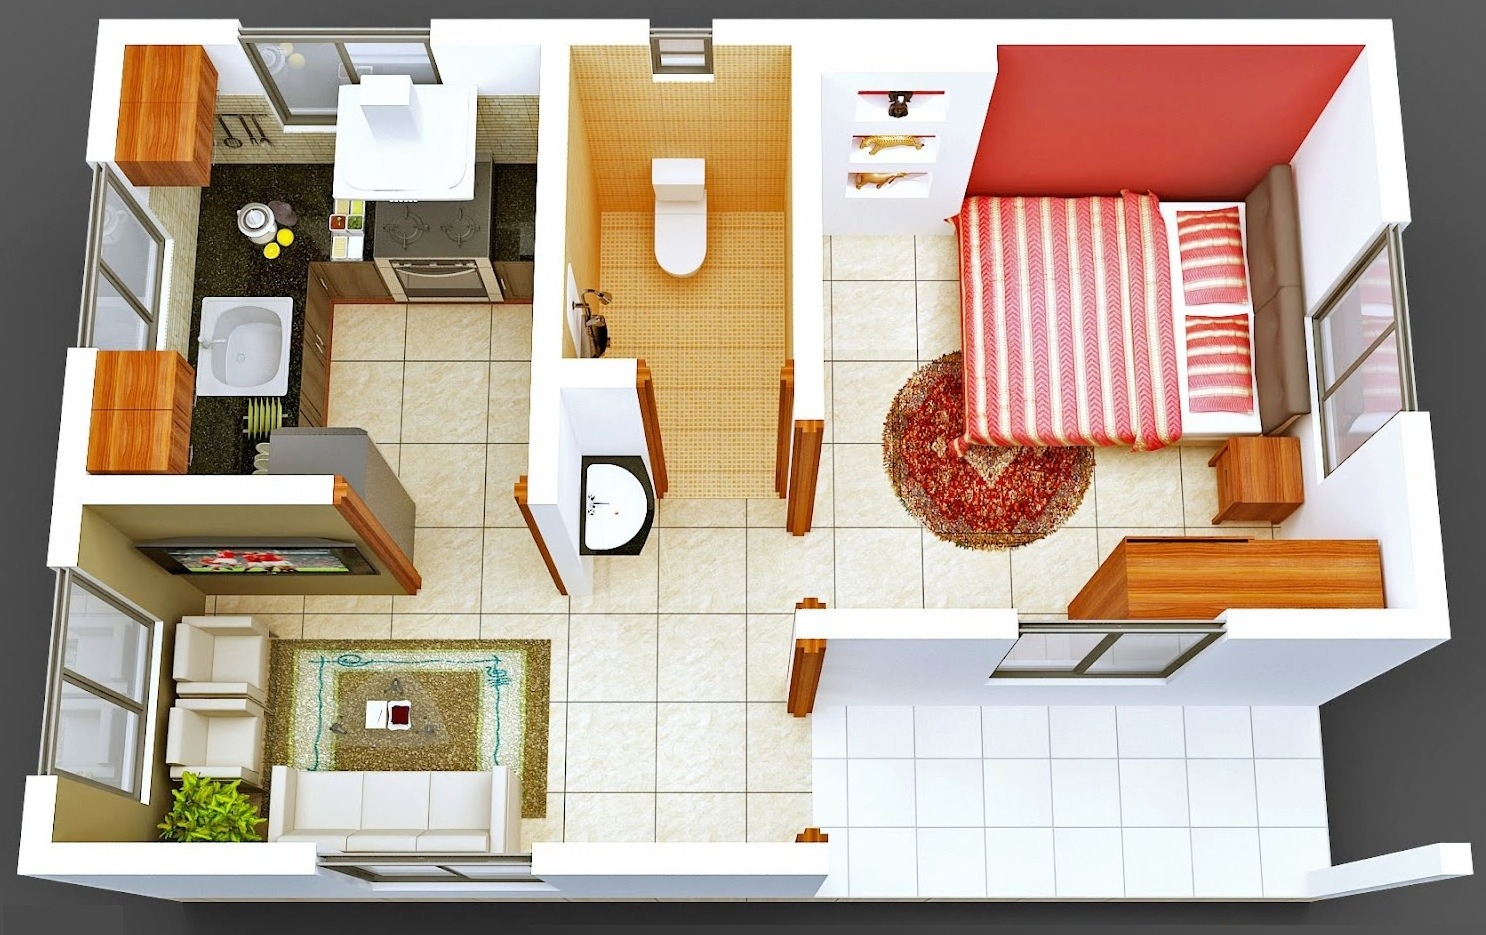 47 Planos De Los Apartamentos 1 Dormitorio on 6x6 bathroom floor plan